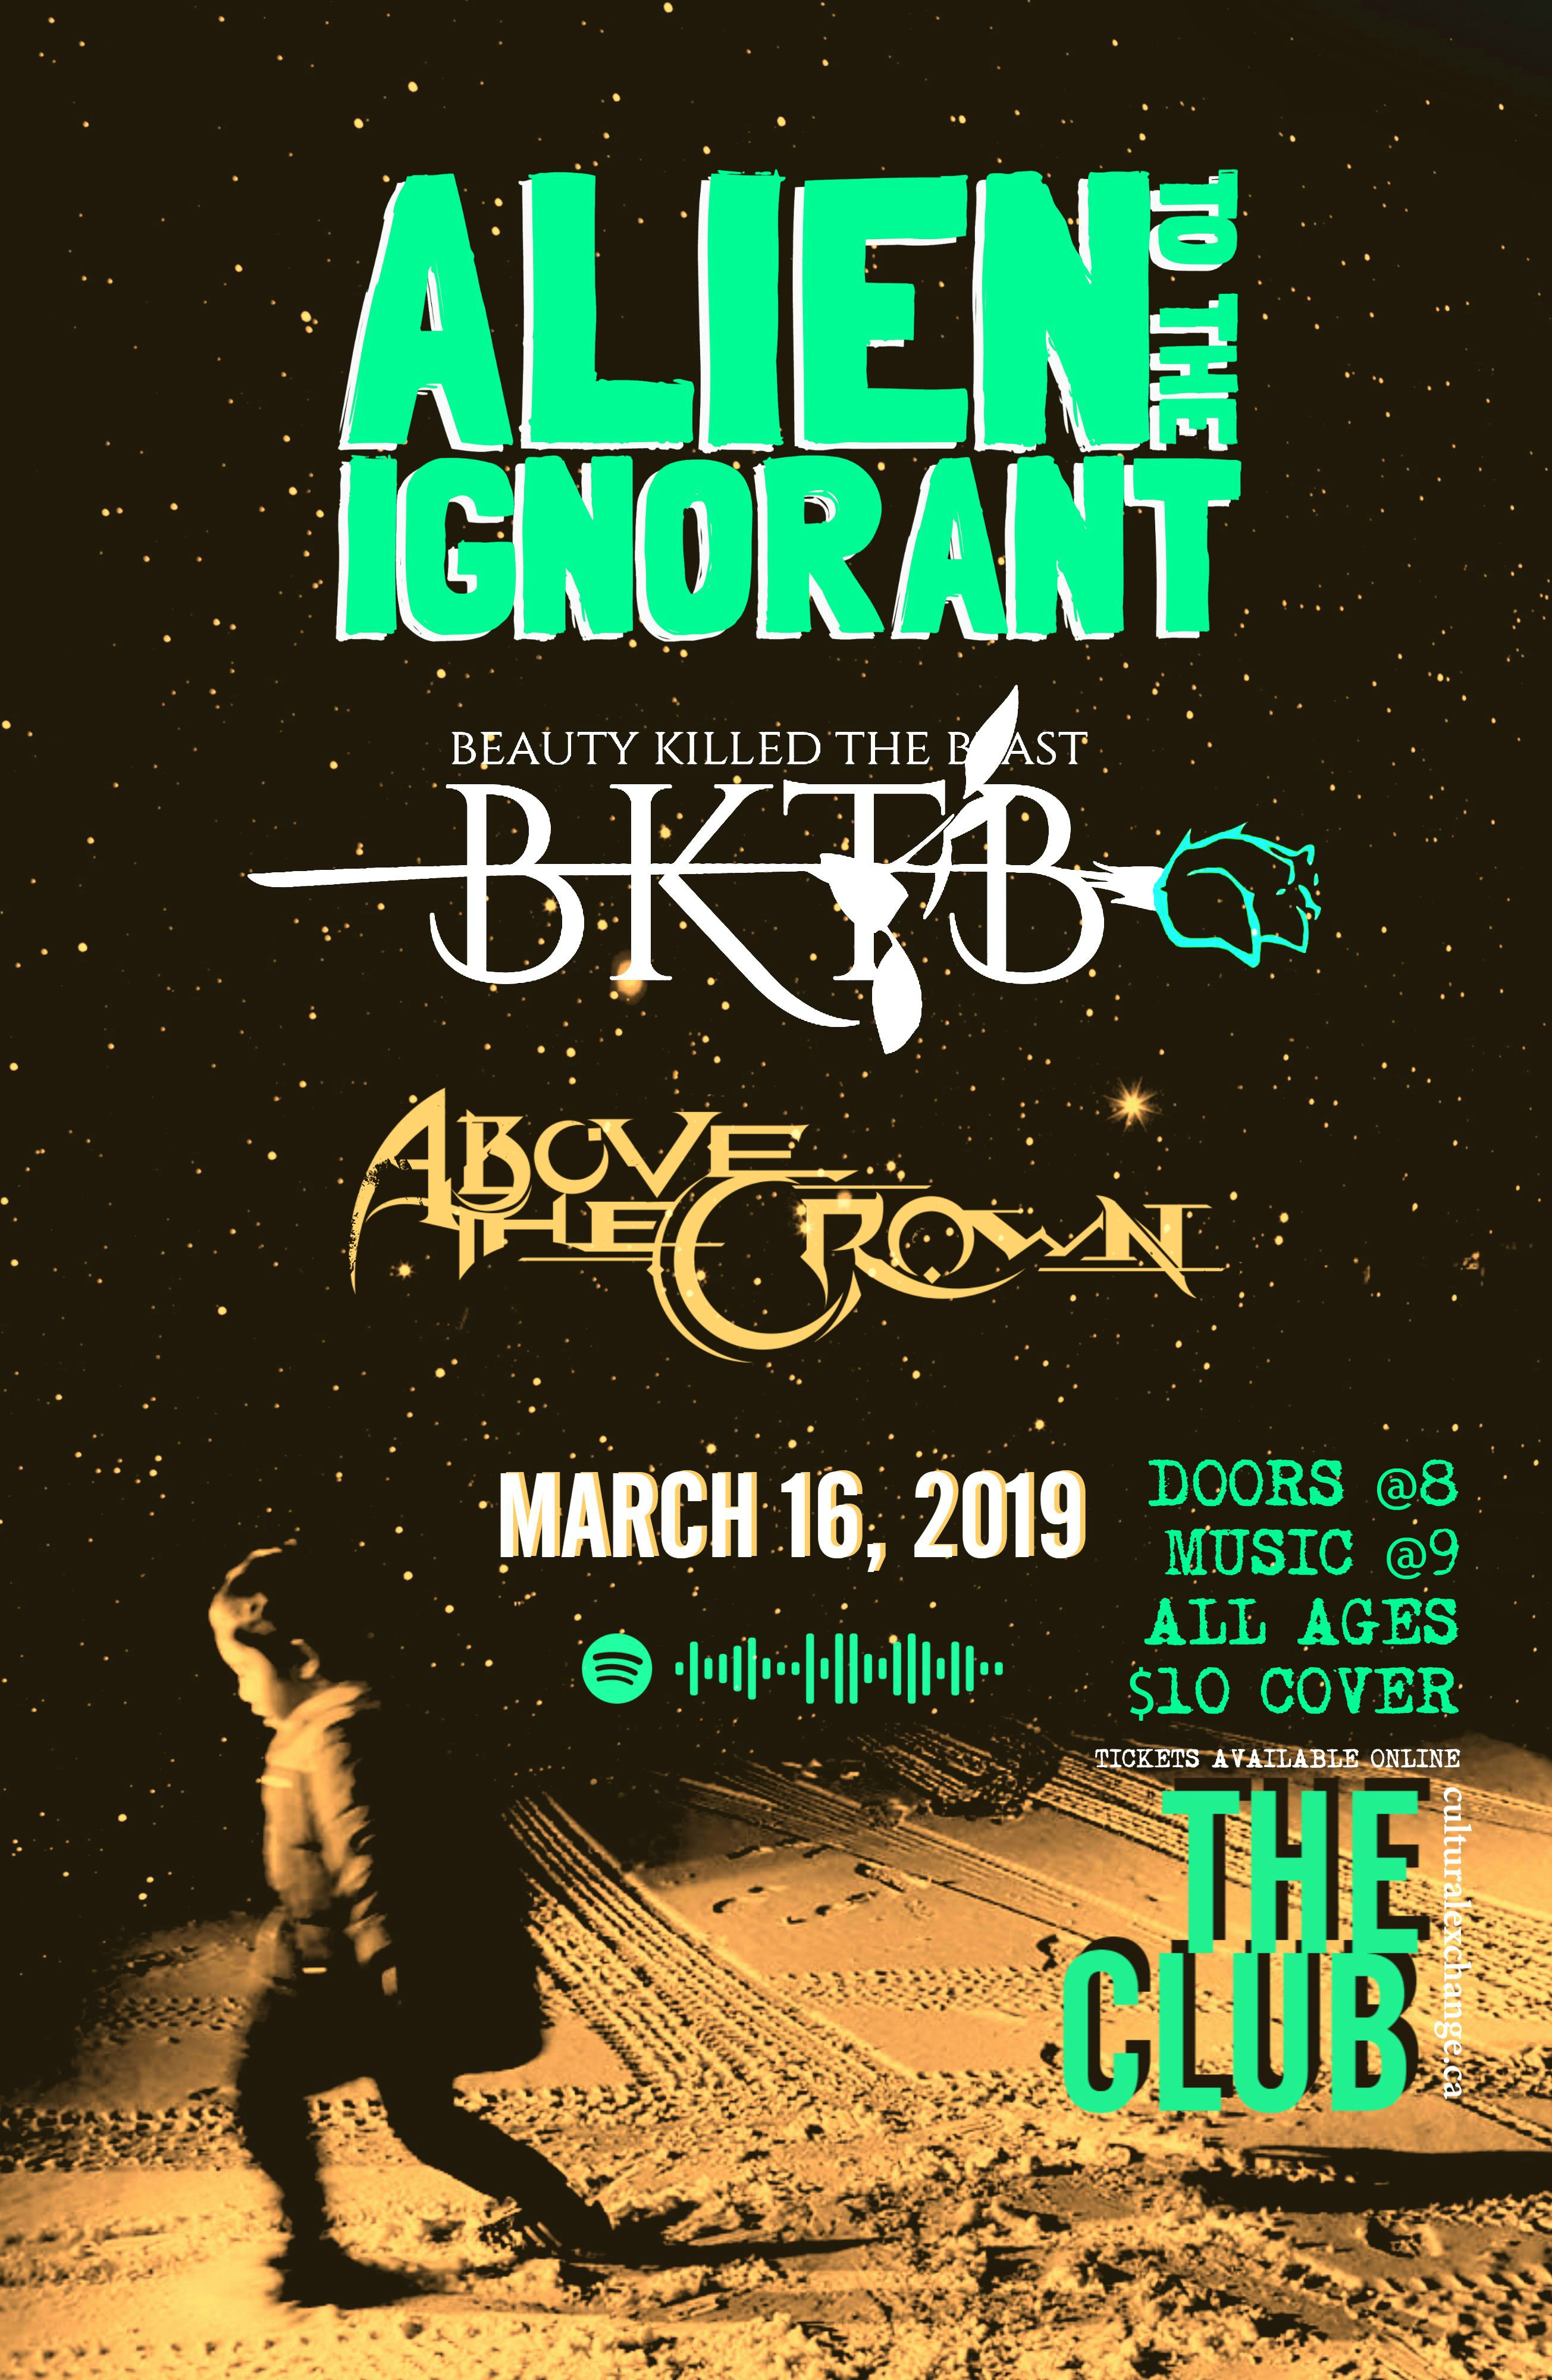 Alien to the Ignorant w/ BKTB and Above the Crown - March 16